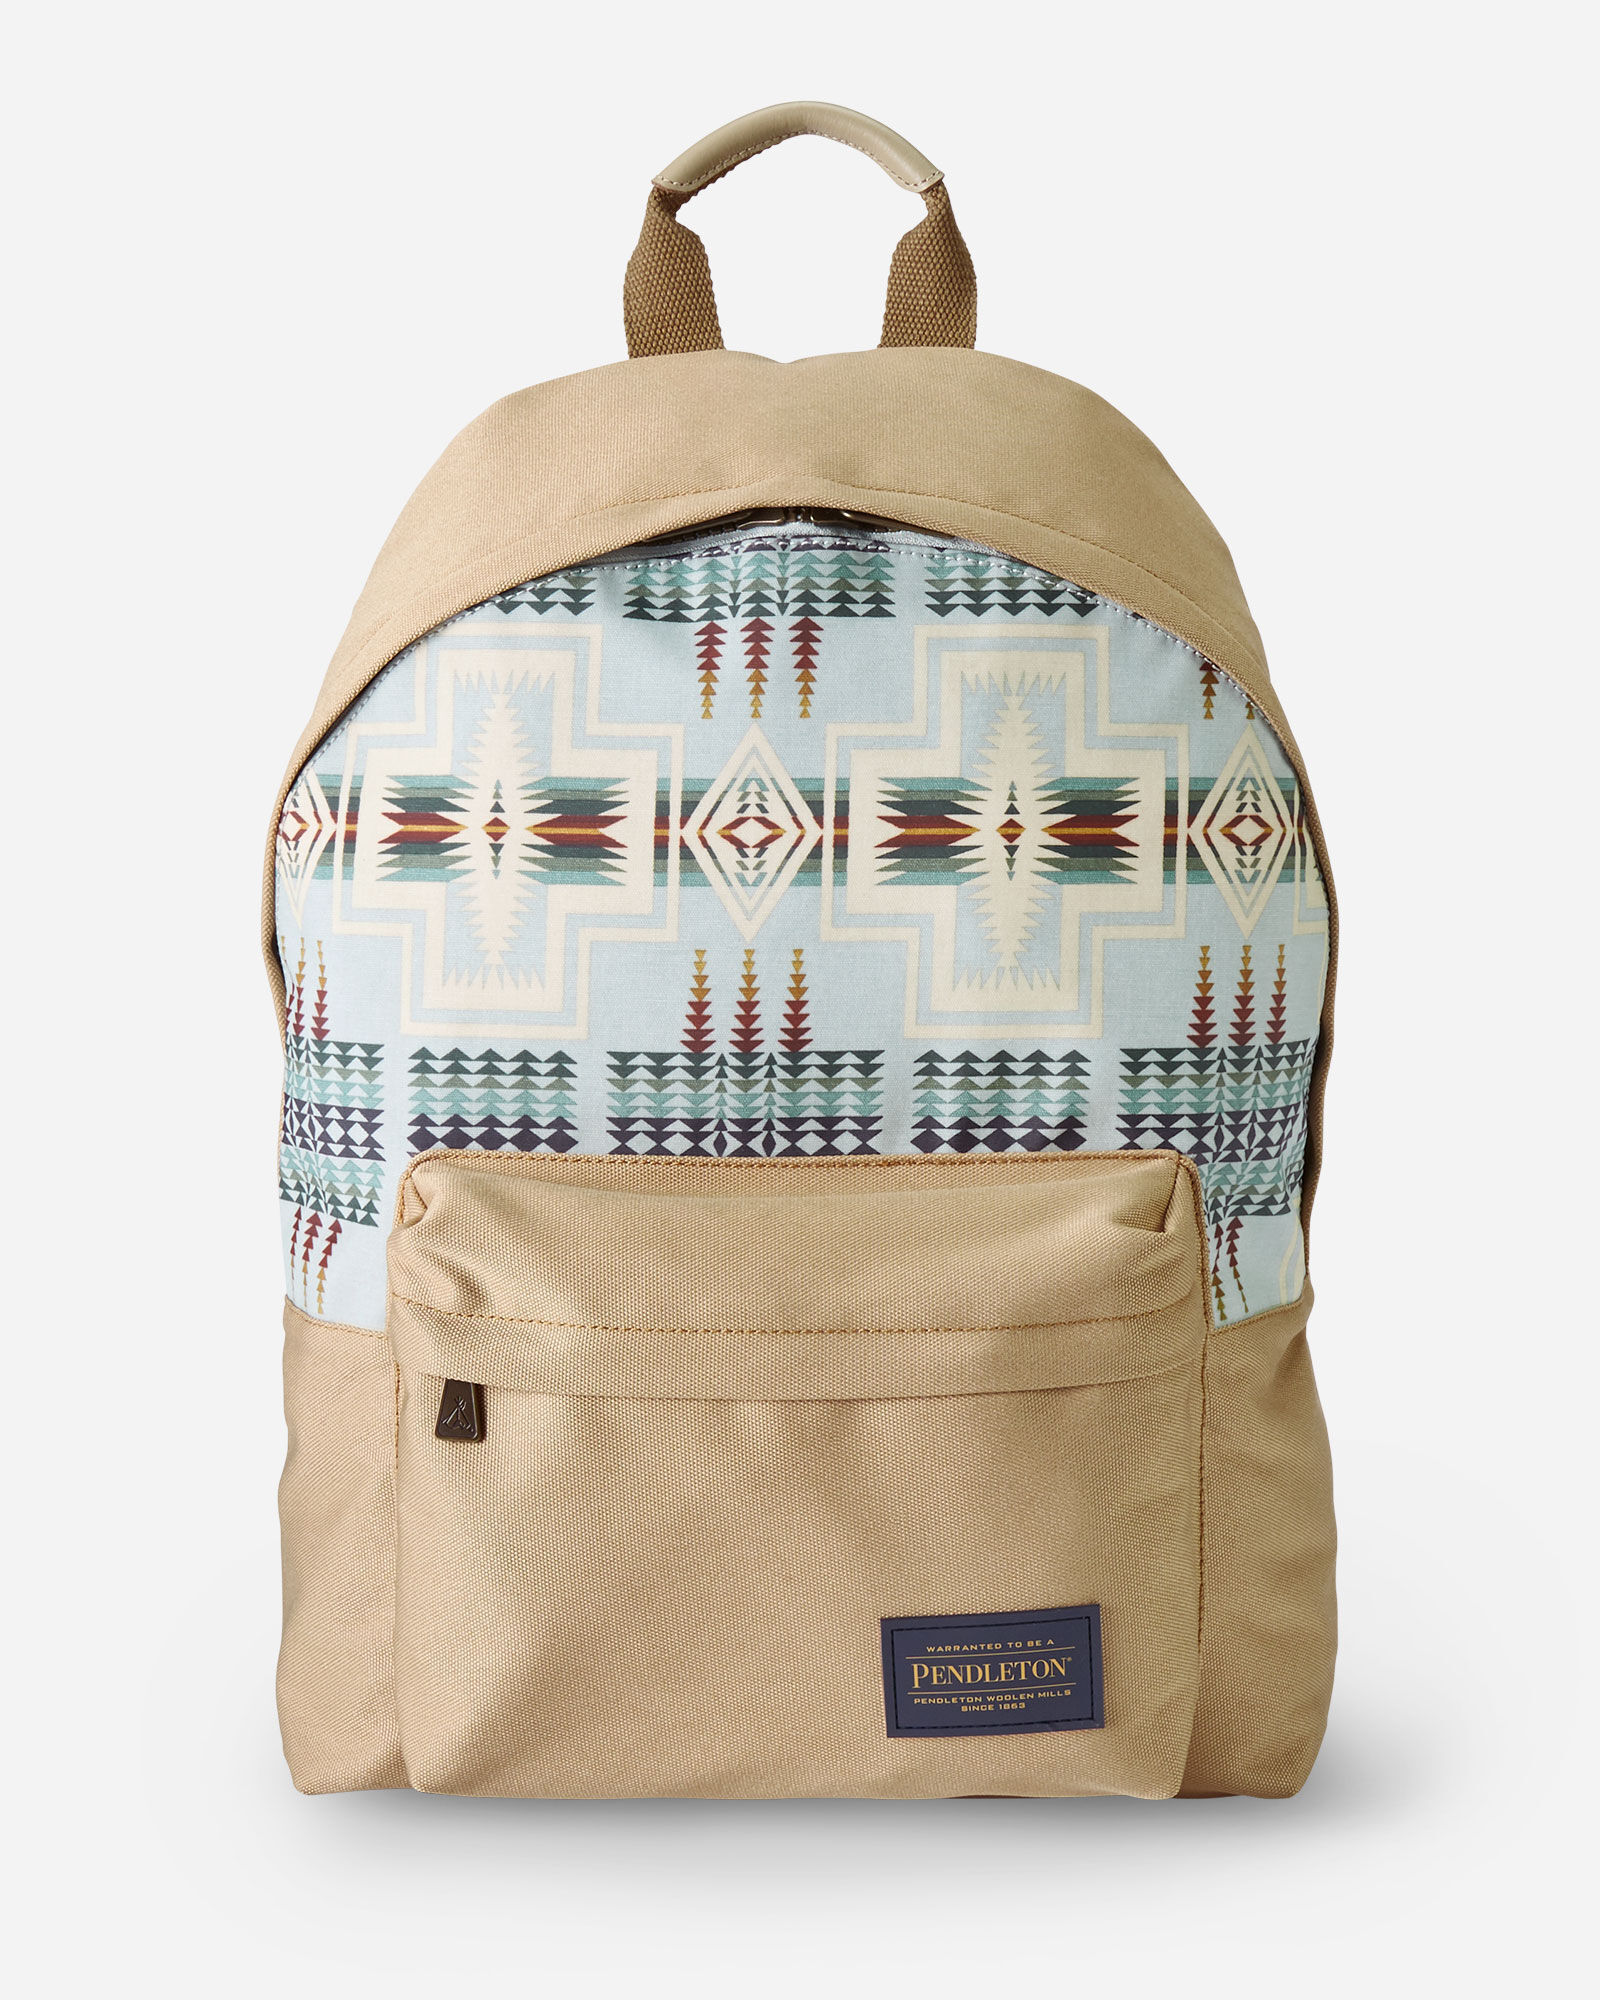 Harding Canopy Canvas Backpack Pendleton Art on canvas is minted's finish option in which the art is printed on a premium cotton canvas material and stretched around a wood frame, also commonly known as. harding canopy canvas backpack